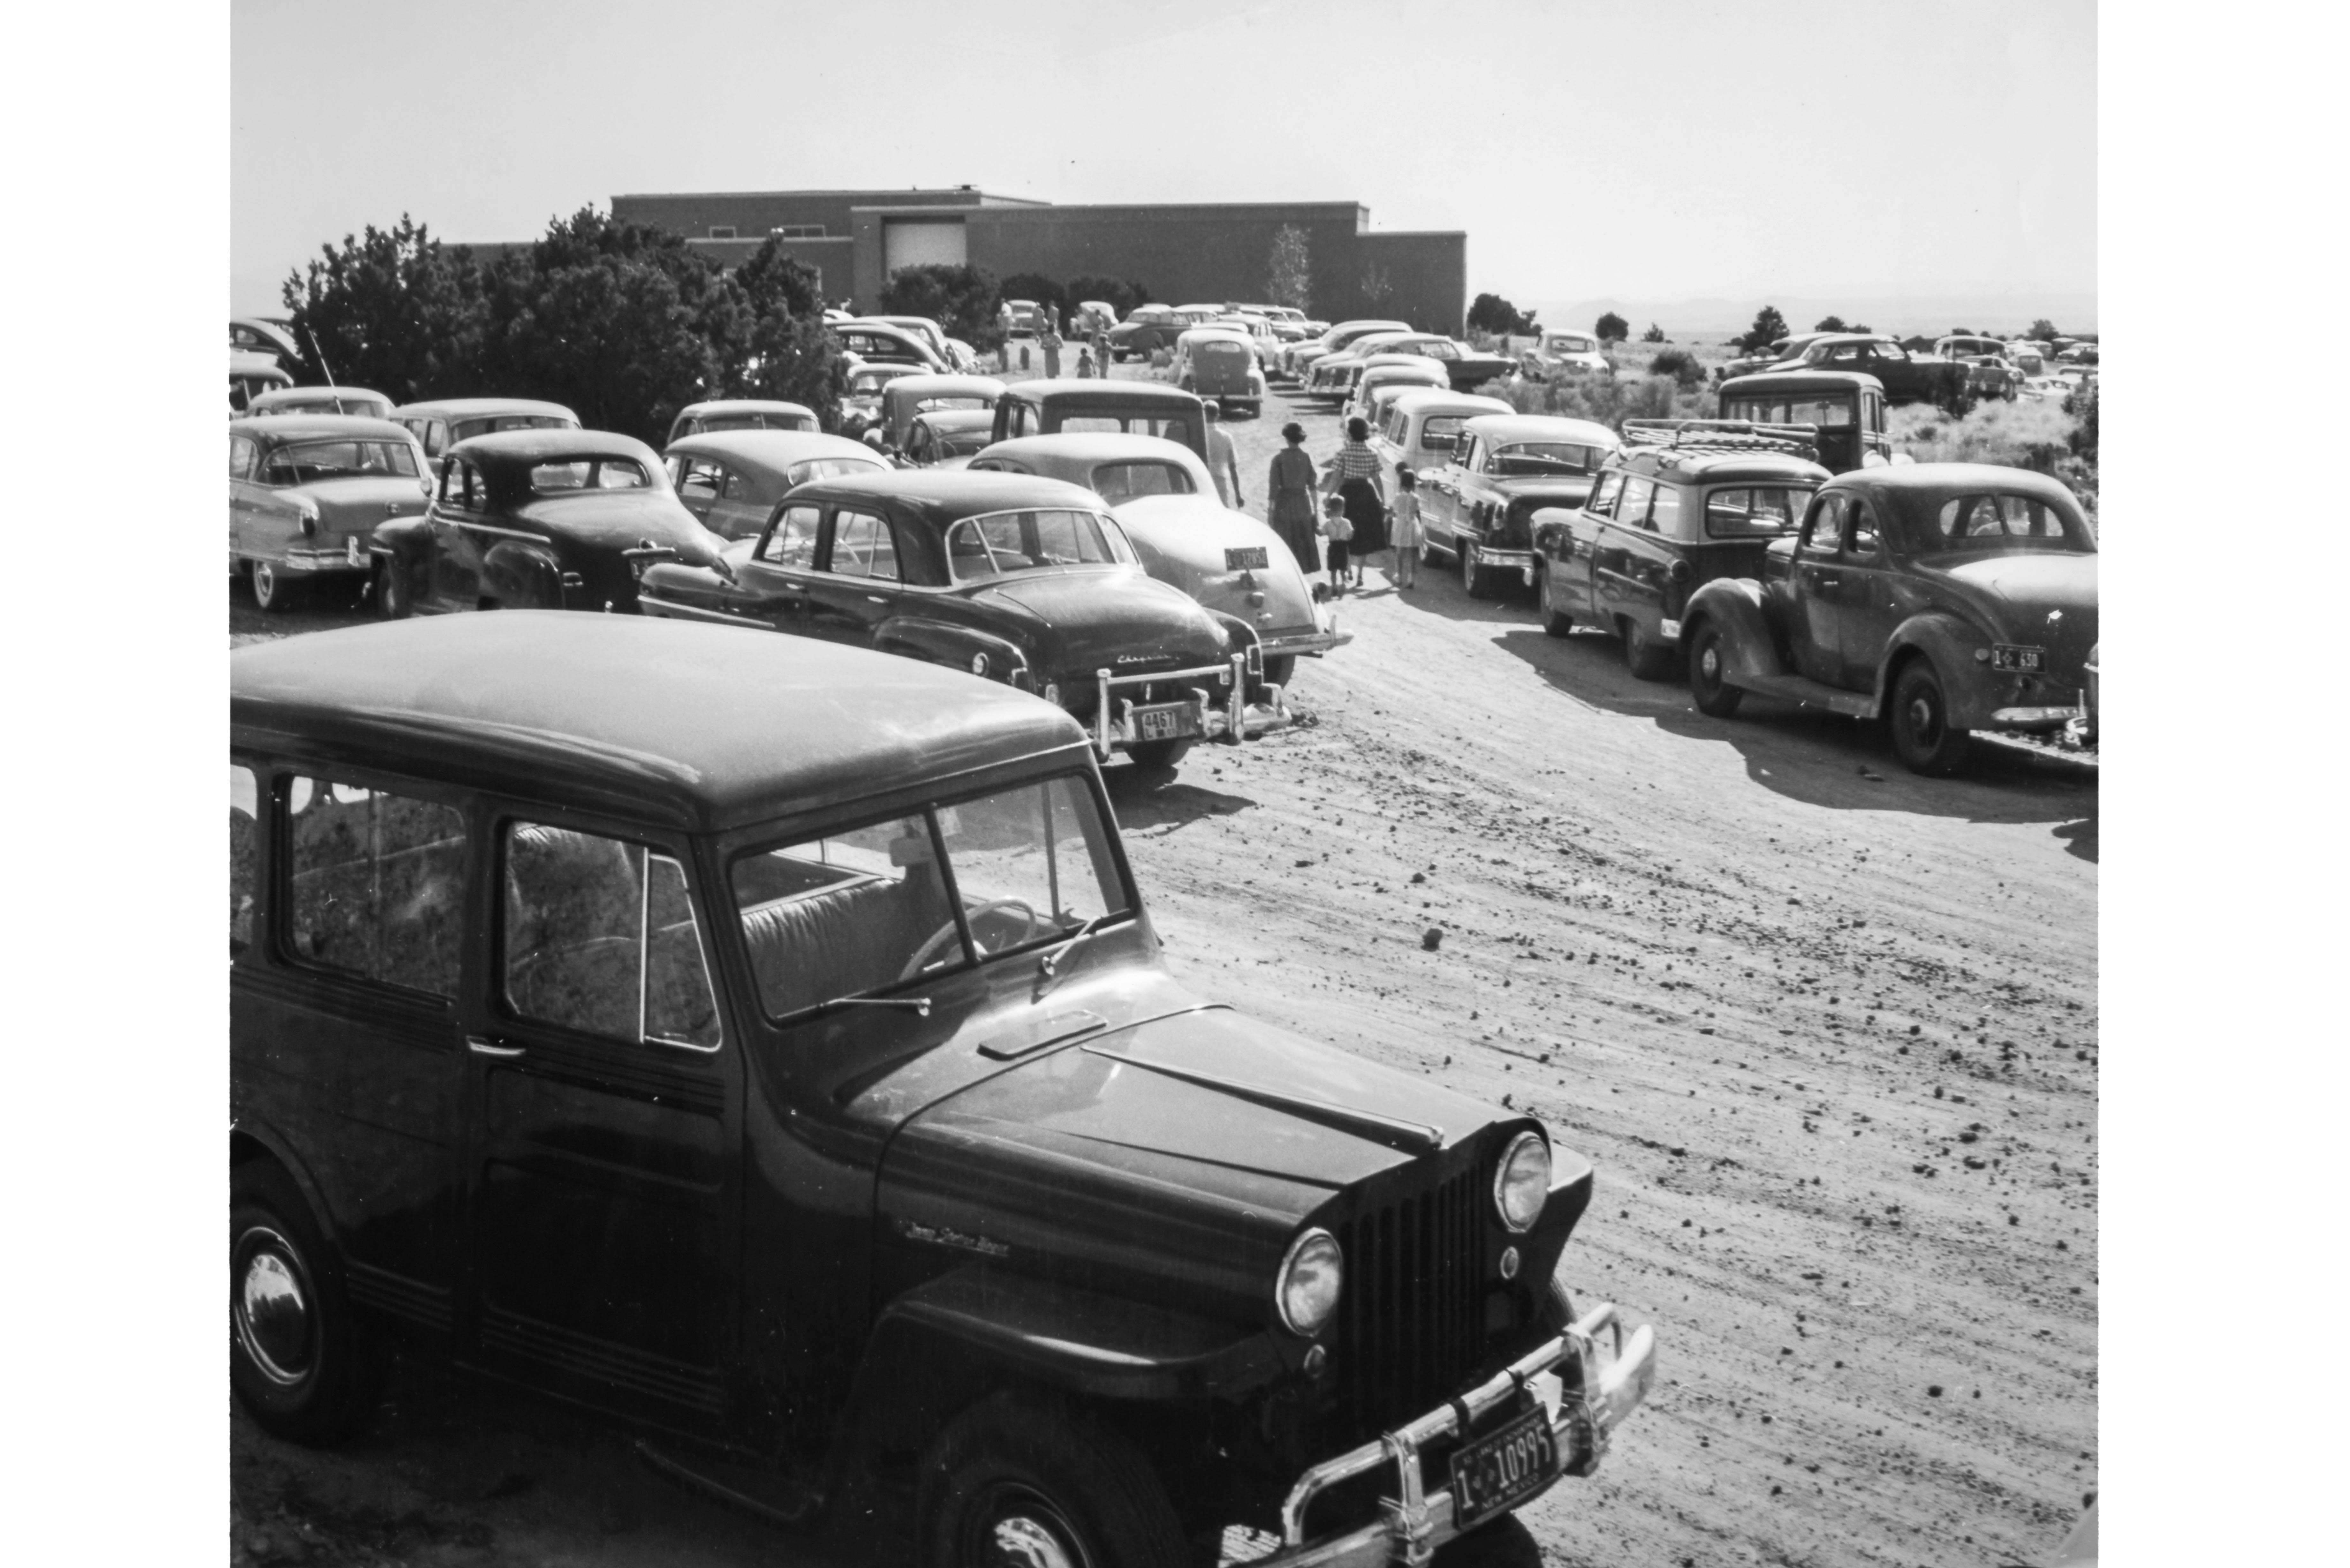 Parking Lot, Opening Day (photographer unknown, 1953)